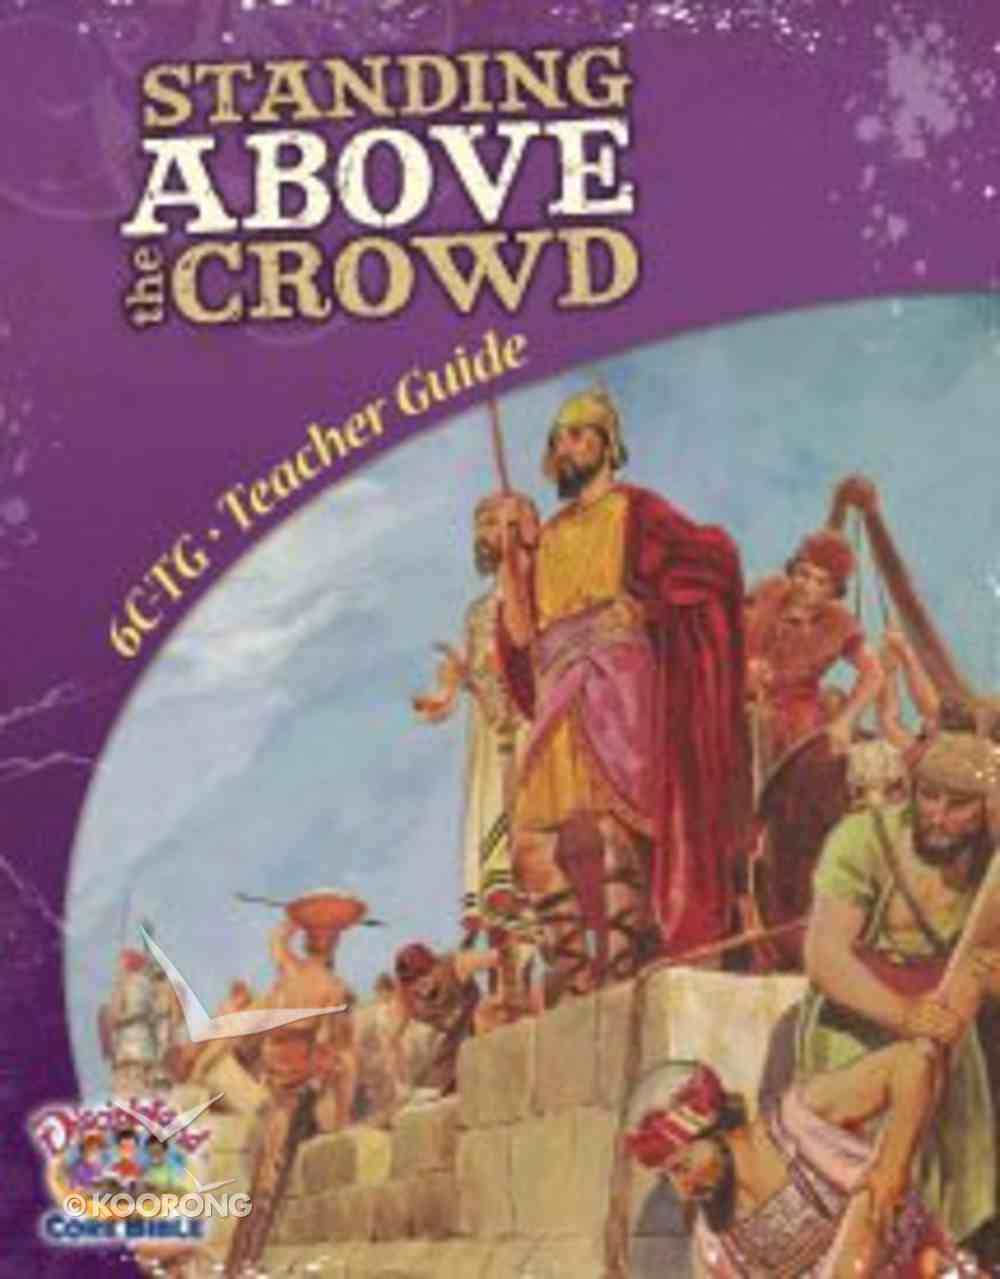 Dlc C6: Walking With God Teacher's Guide Ages 11-14 (Standing Above the Crowd) (Discipleland Level 6, Ages 11-14, Qtrs Abcd Series) Paperback